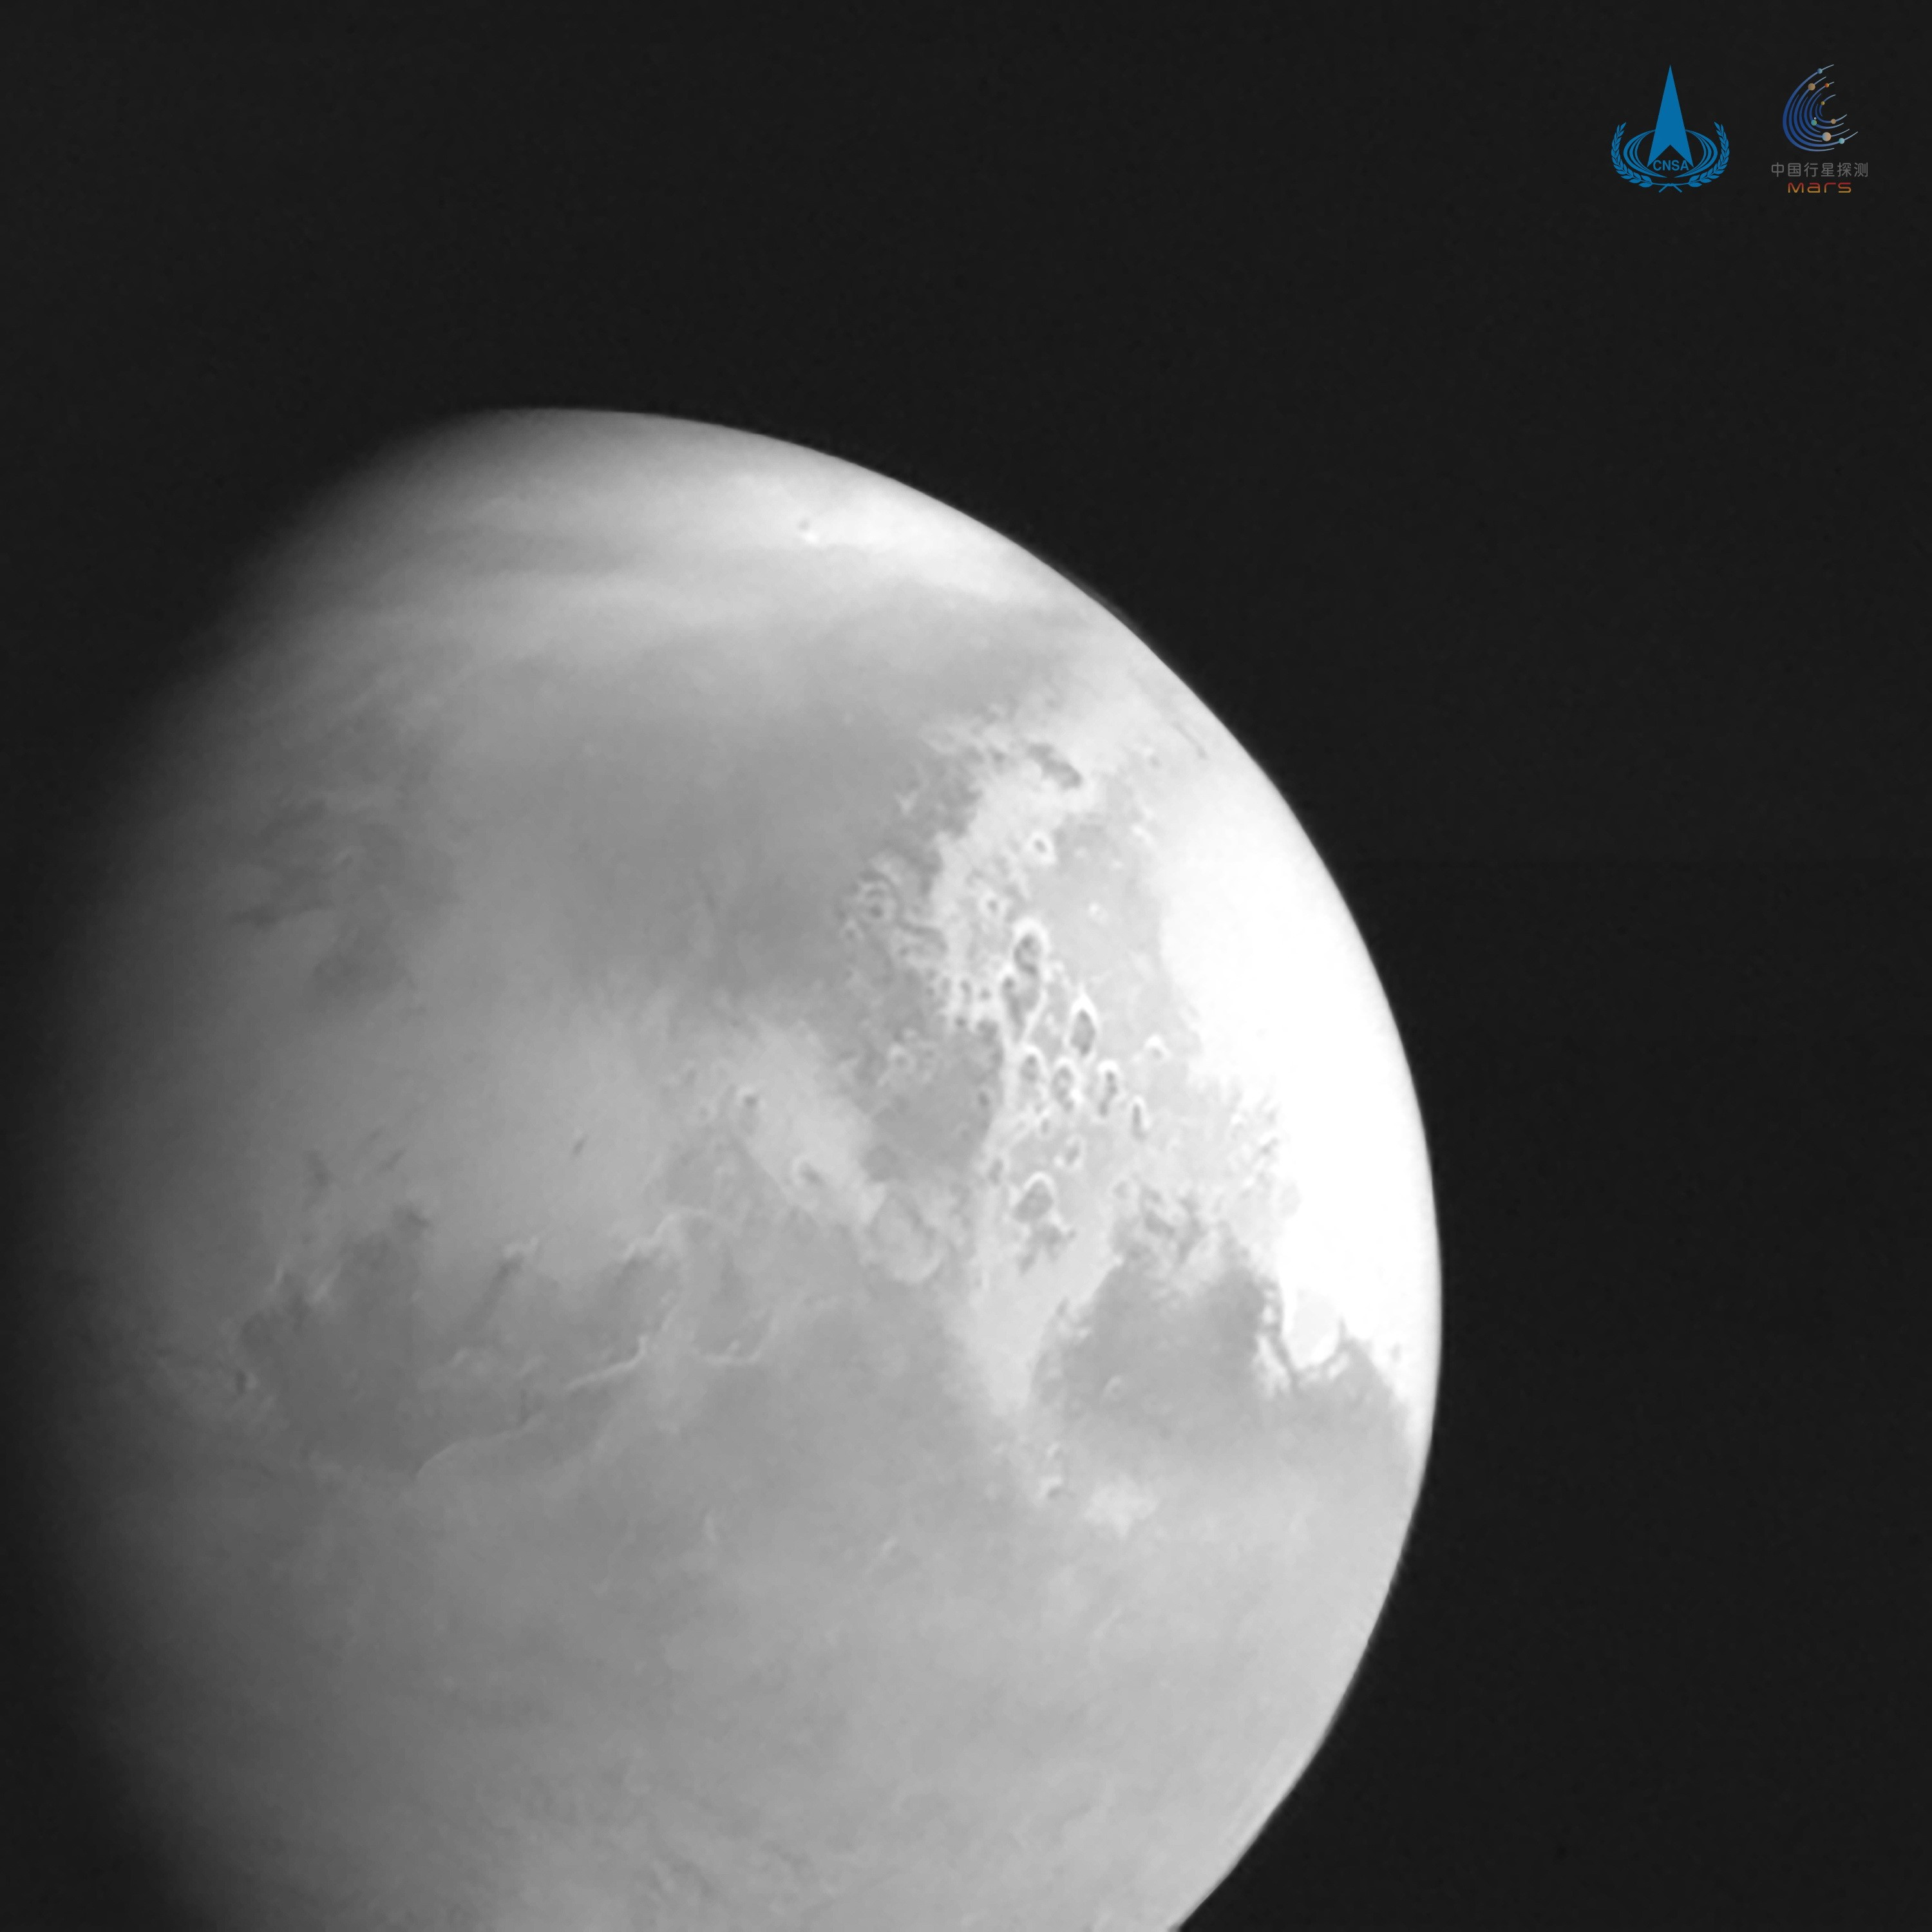 China probe delivers its first photo of Mars